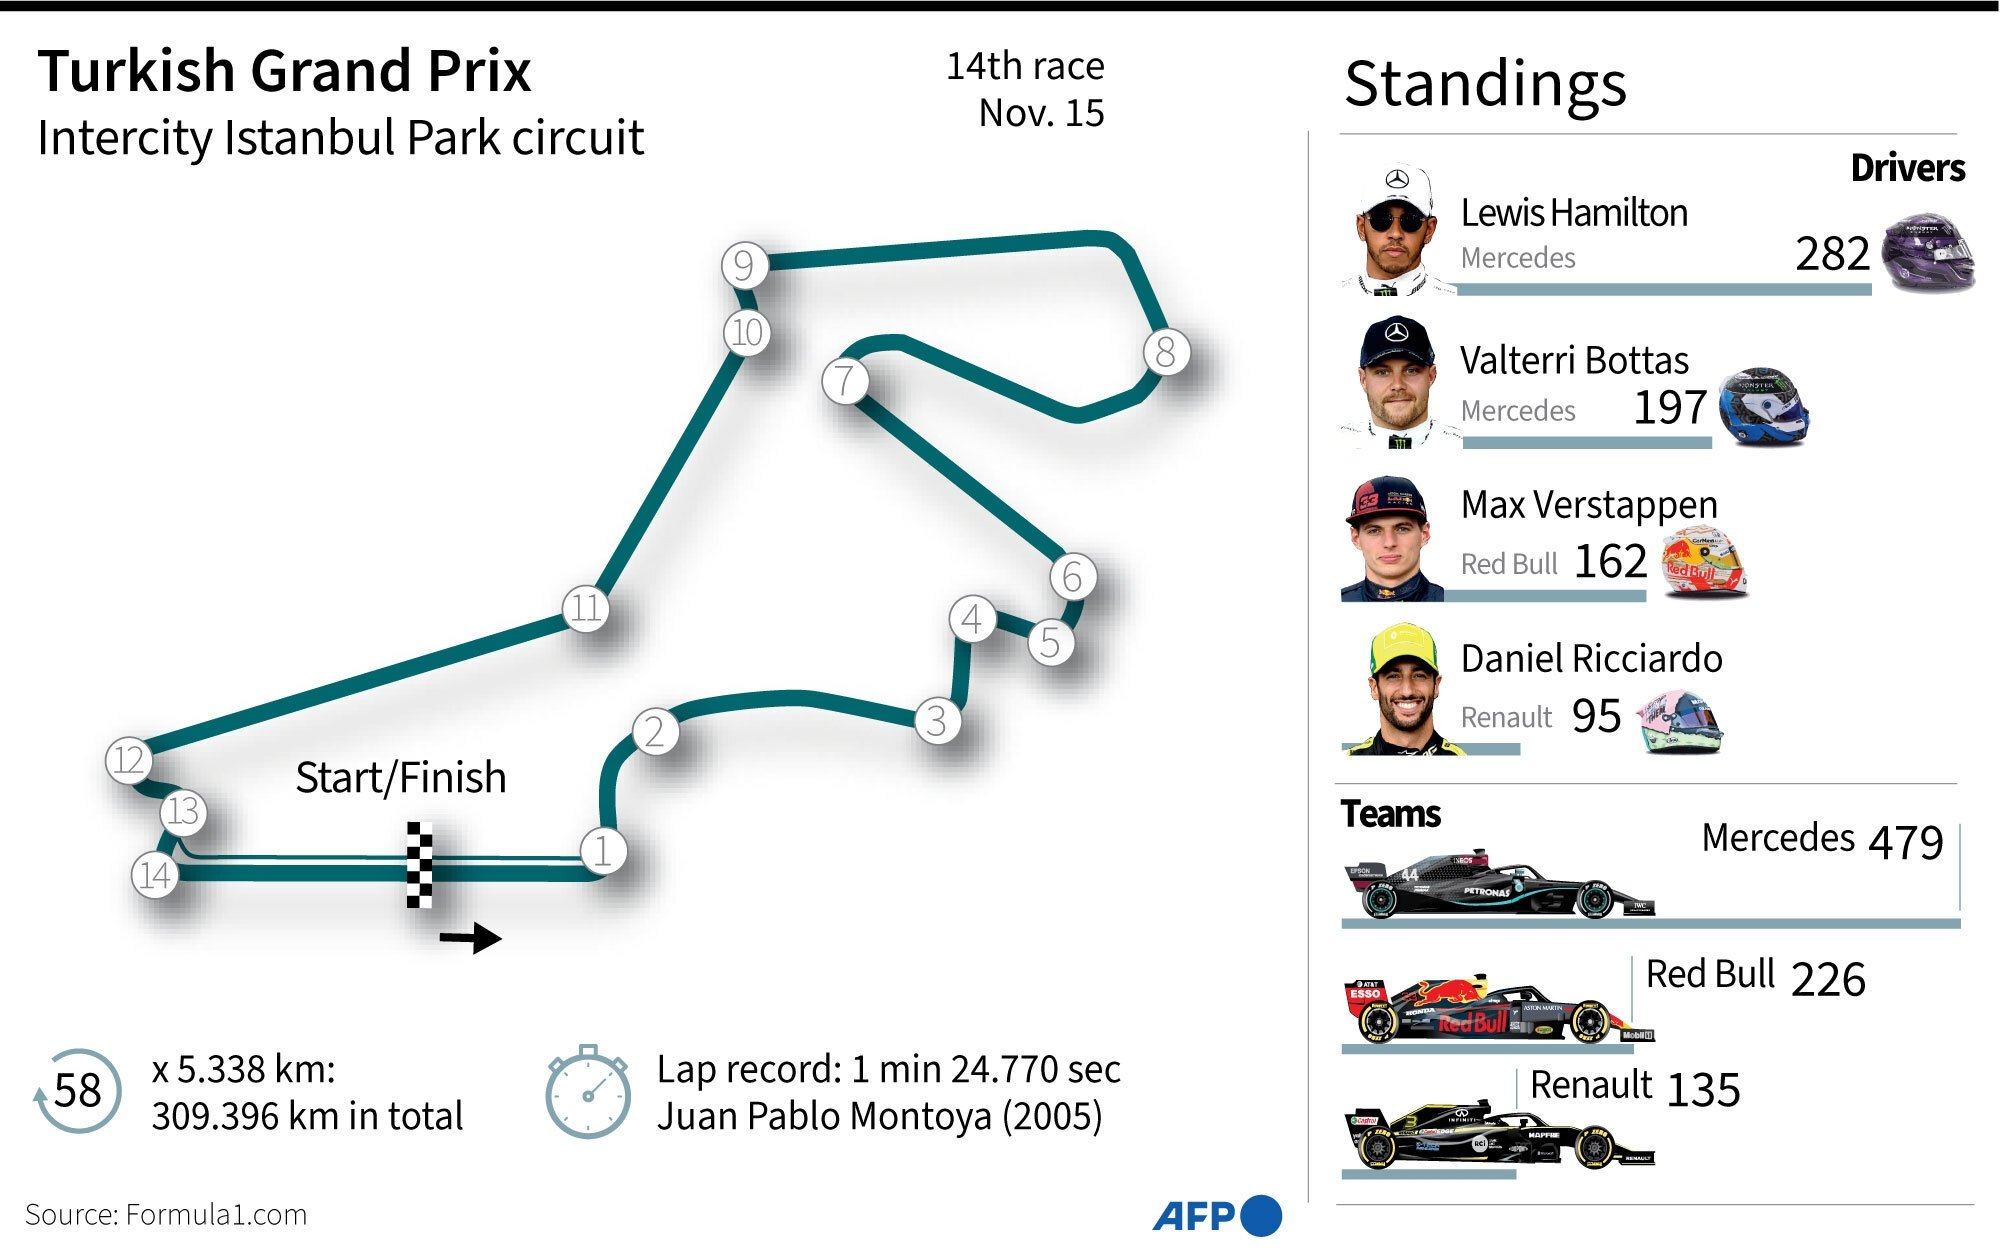 Infographic by Agence France-Presse (AFP)